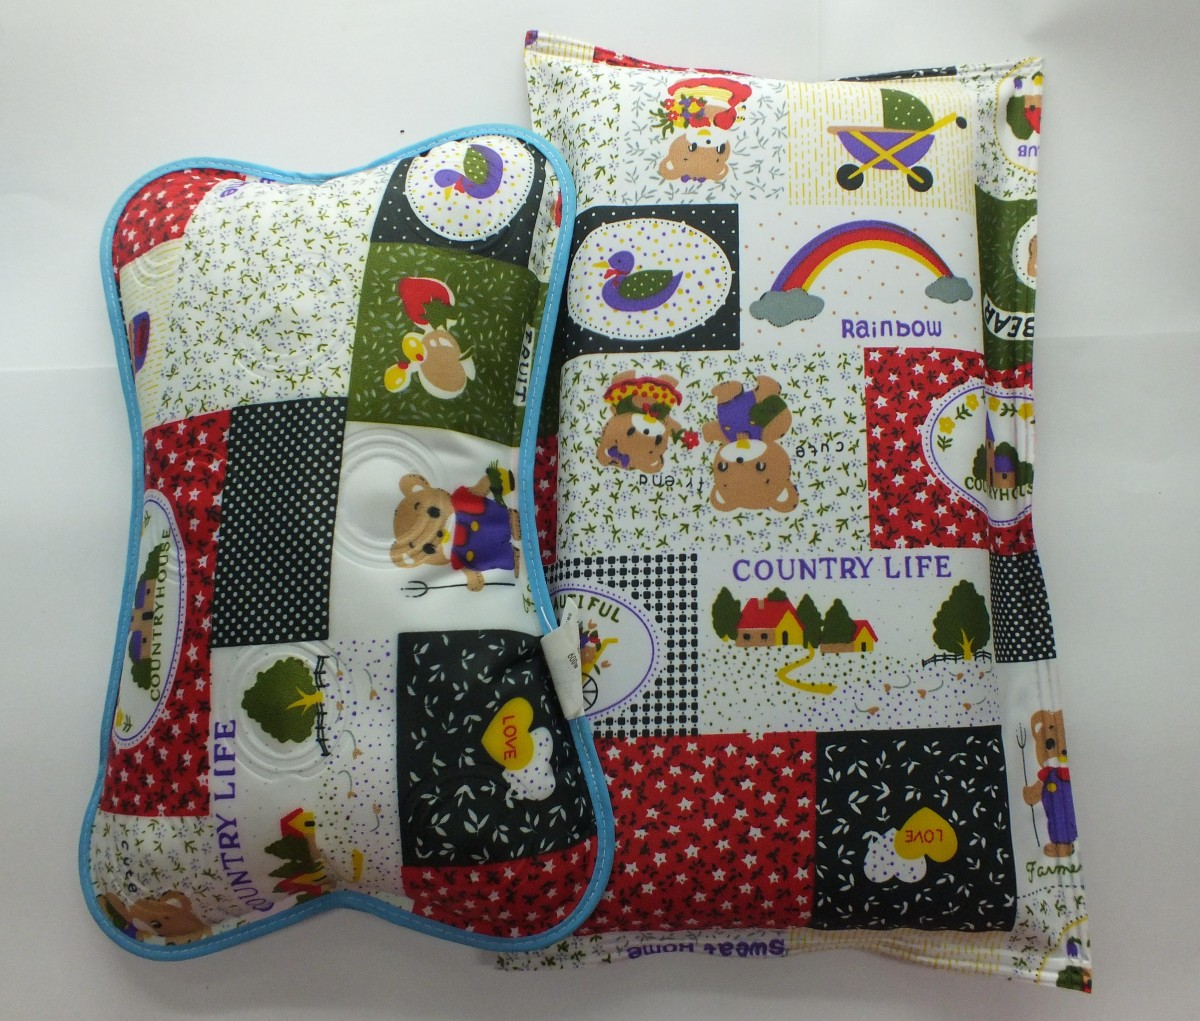 Hot Pillow and Cold Pillow